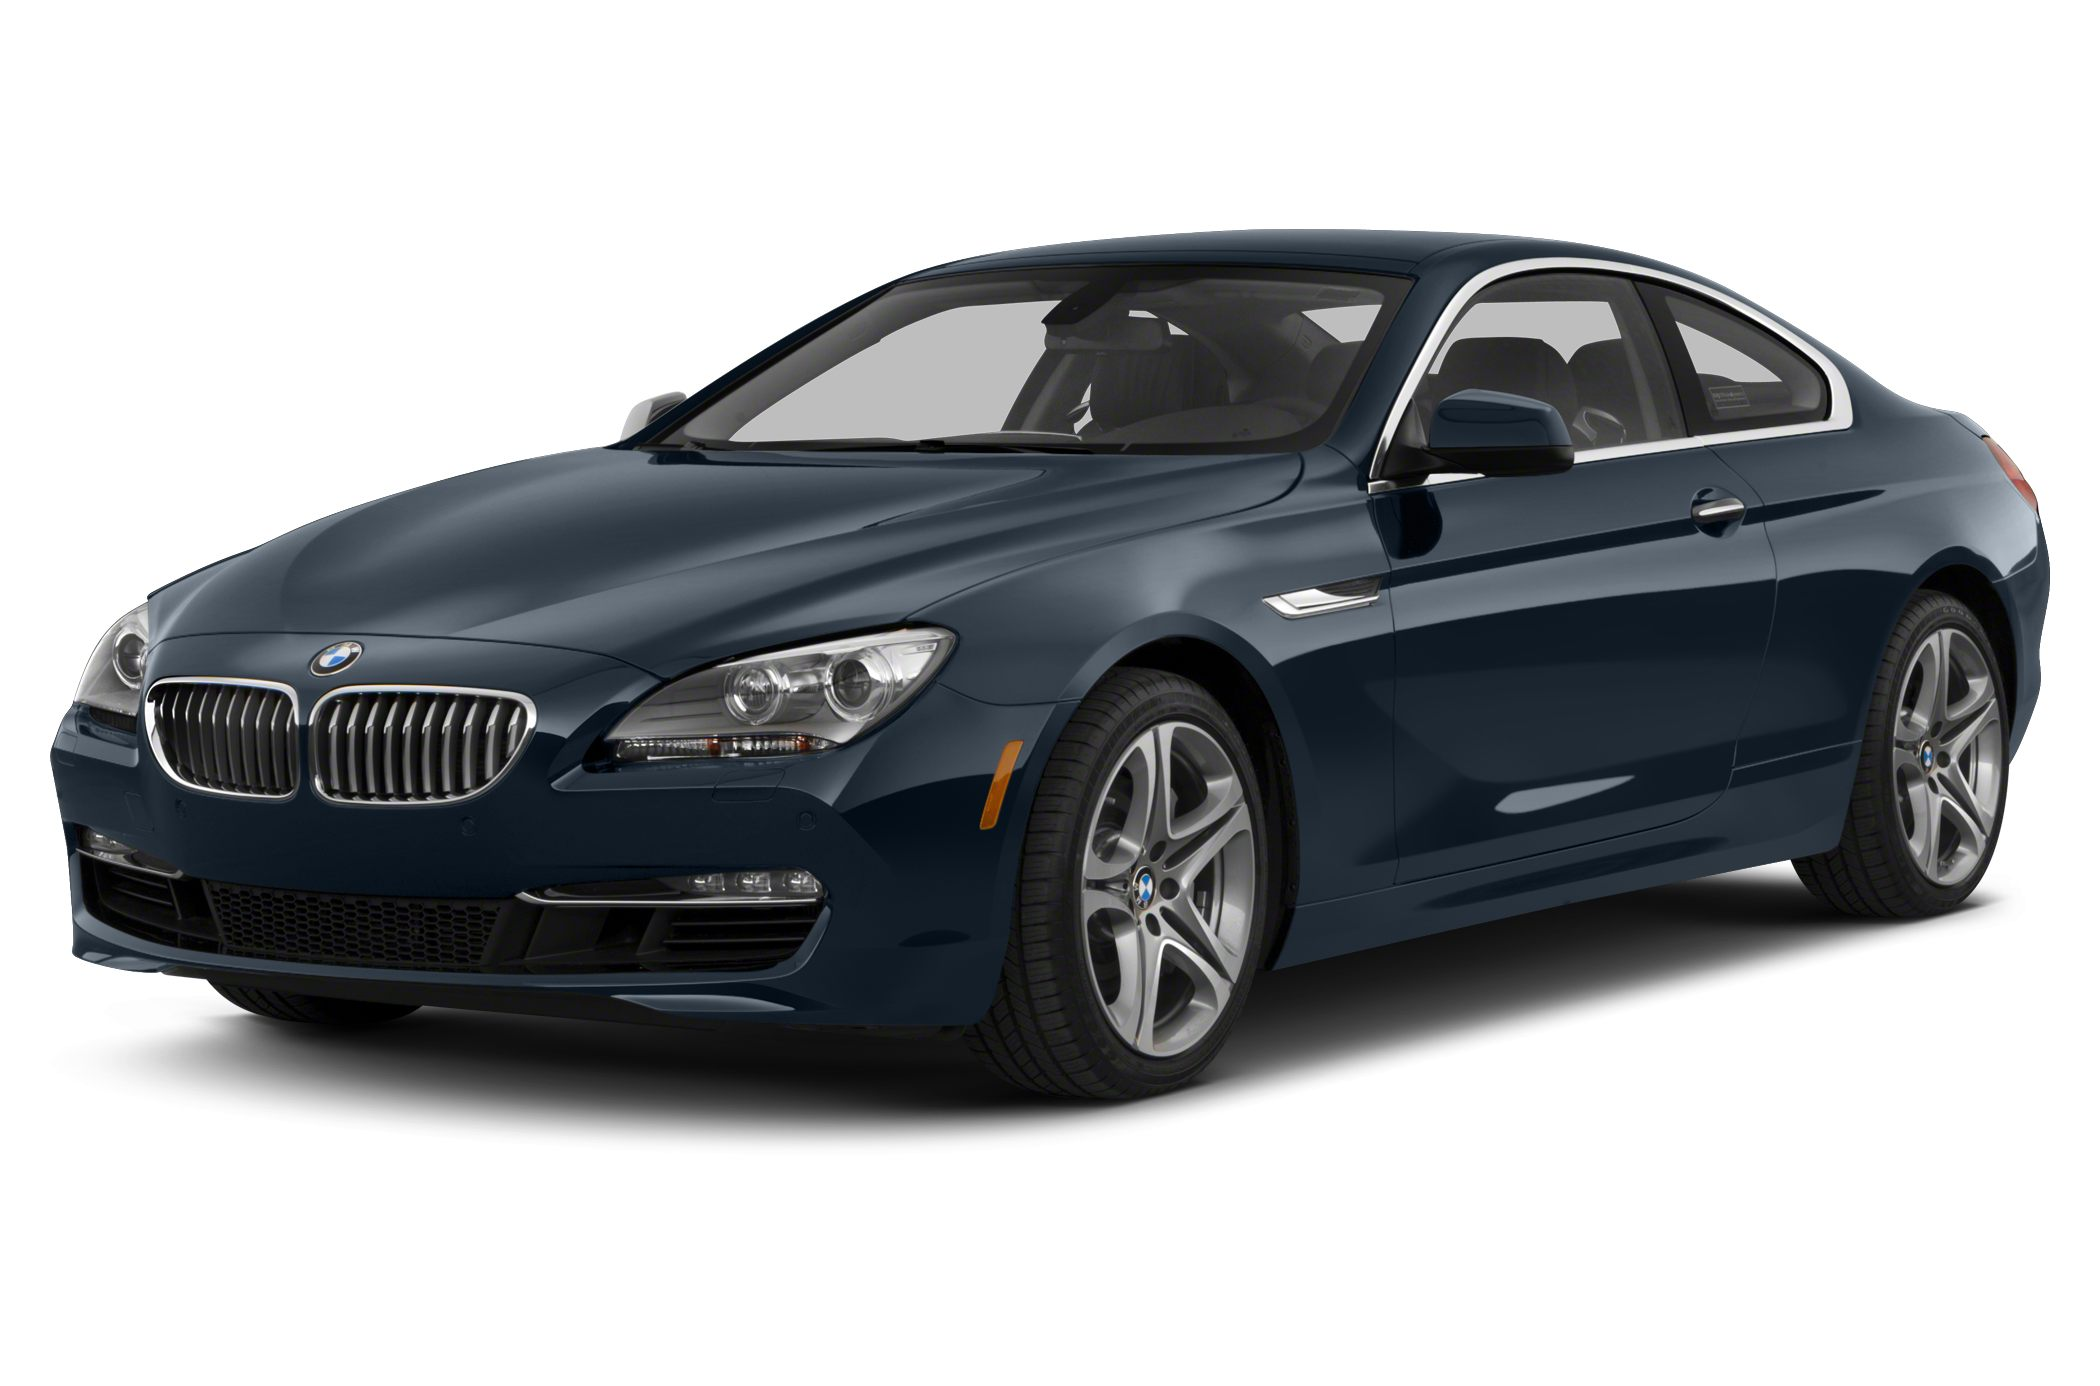 2014 Bmw 650 Specs And Prices